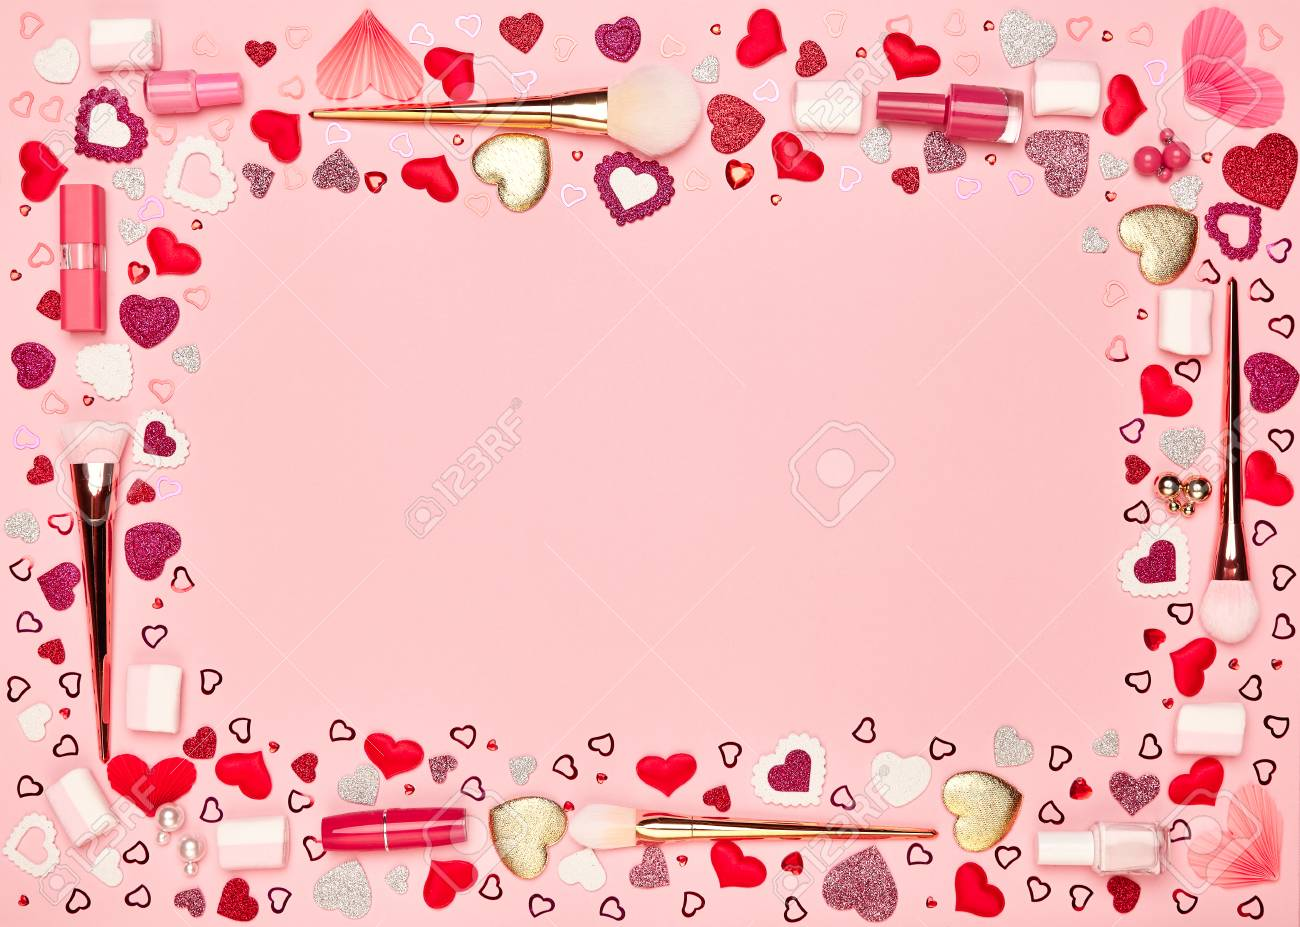 Downloading Valentines Day Wallpaper For Your Desktop Or Laptop Clear Wallpaper